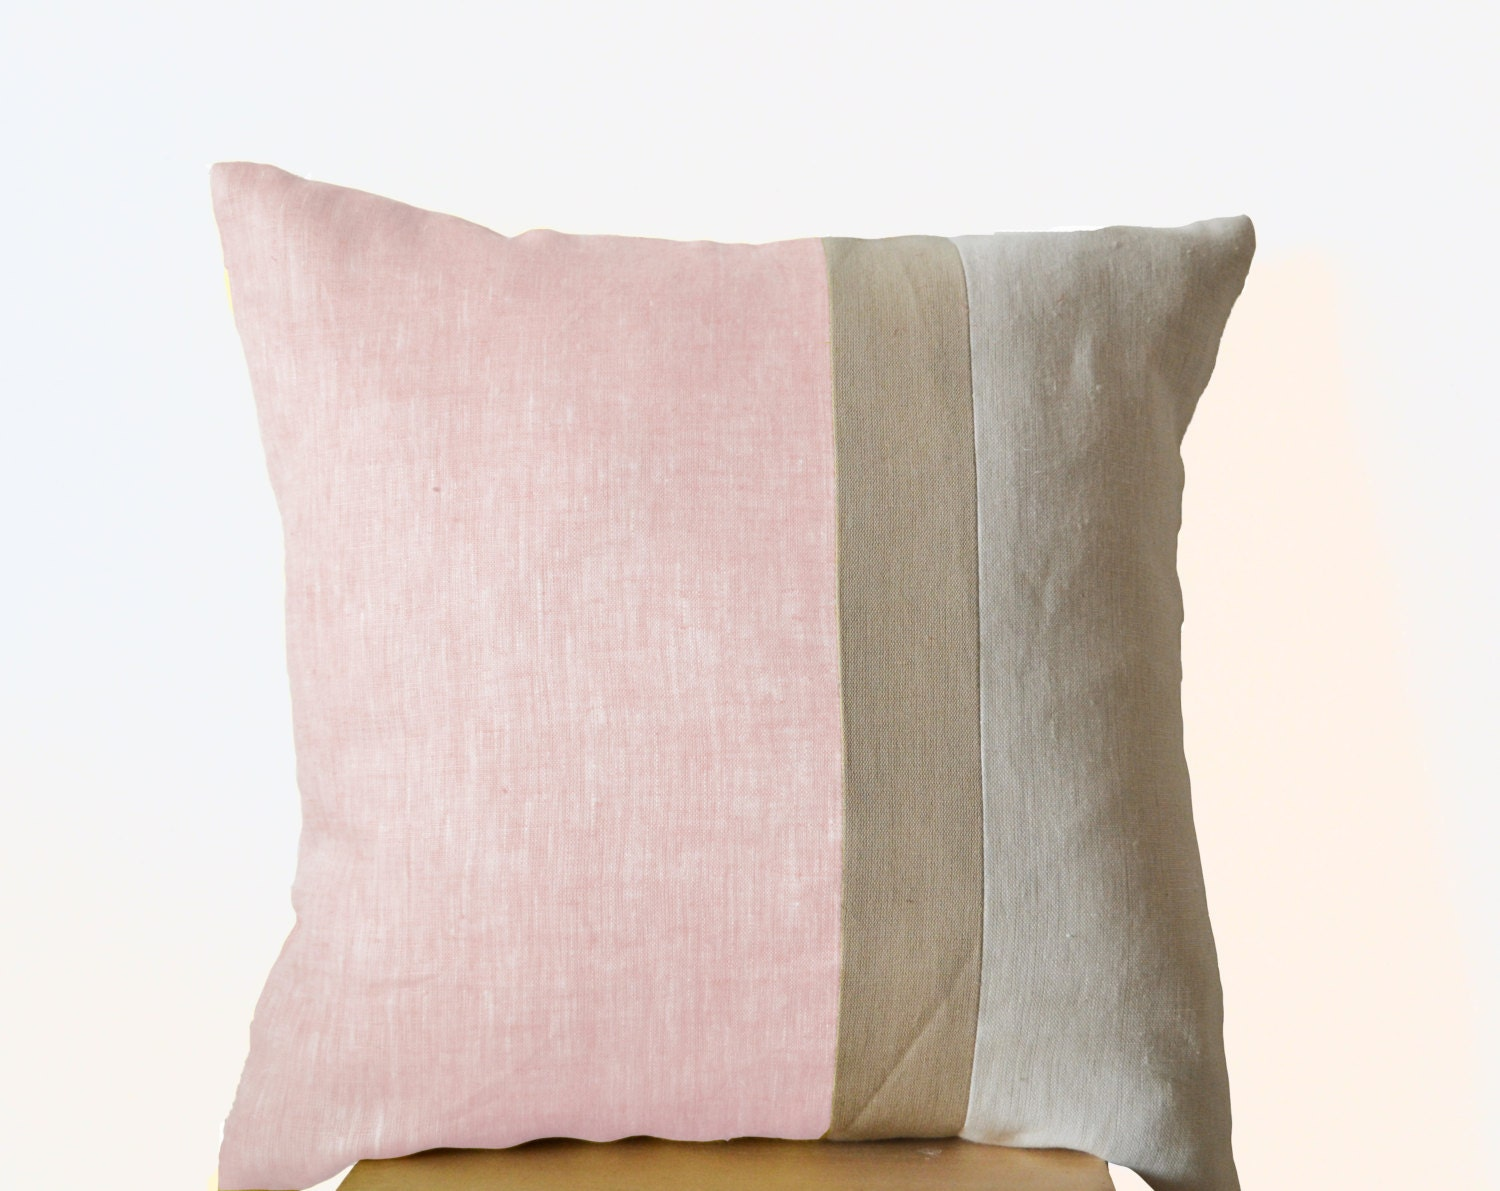 Pink Throw Pillows For Couch : Pink Pillow Throw Pillows color block Couch Pillows